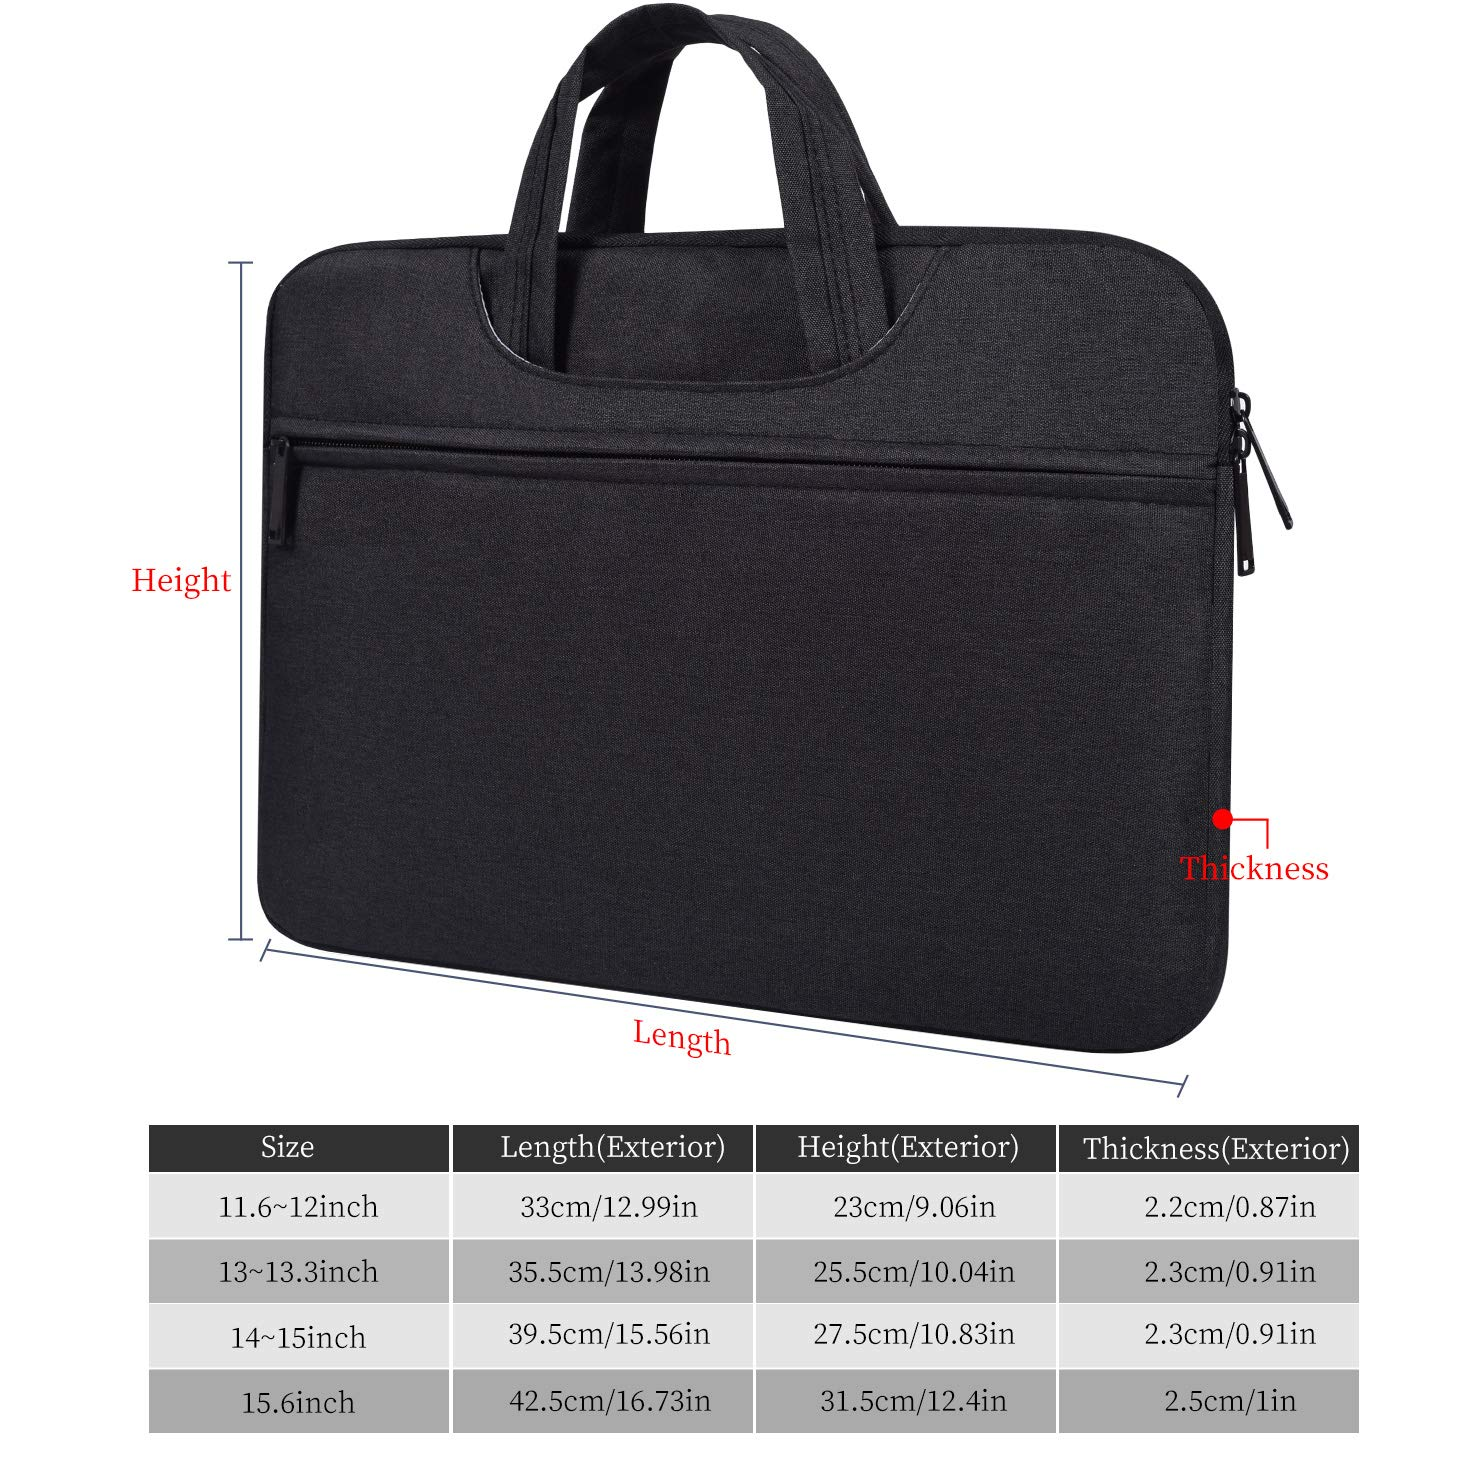 7bb88addcd1f Amazon.com: imComor 14-15 Inch Laptop Sleeve Briefcase Handbag ...